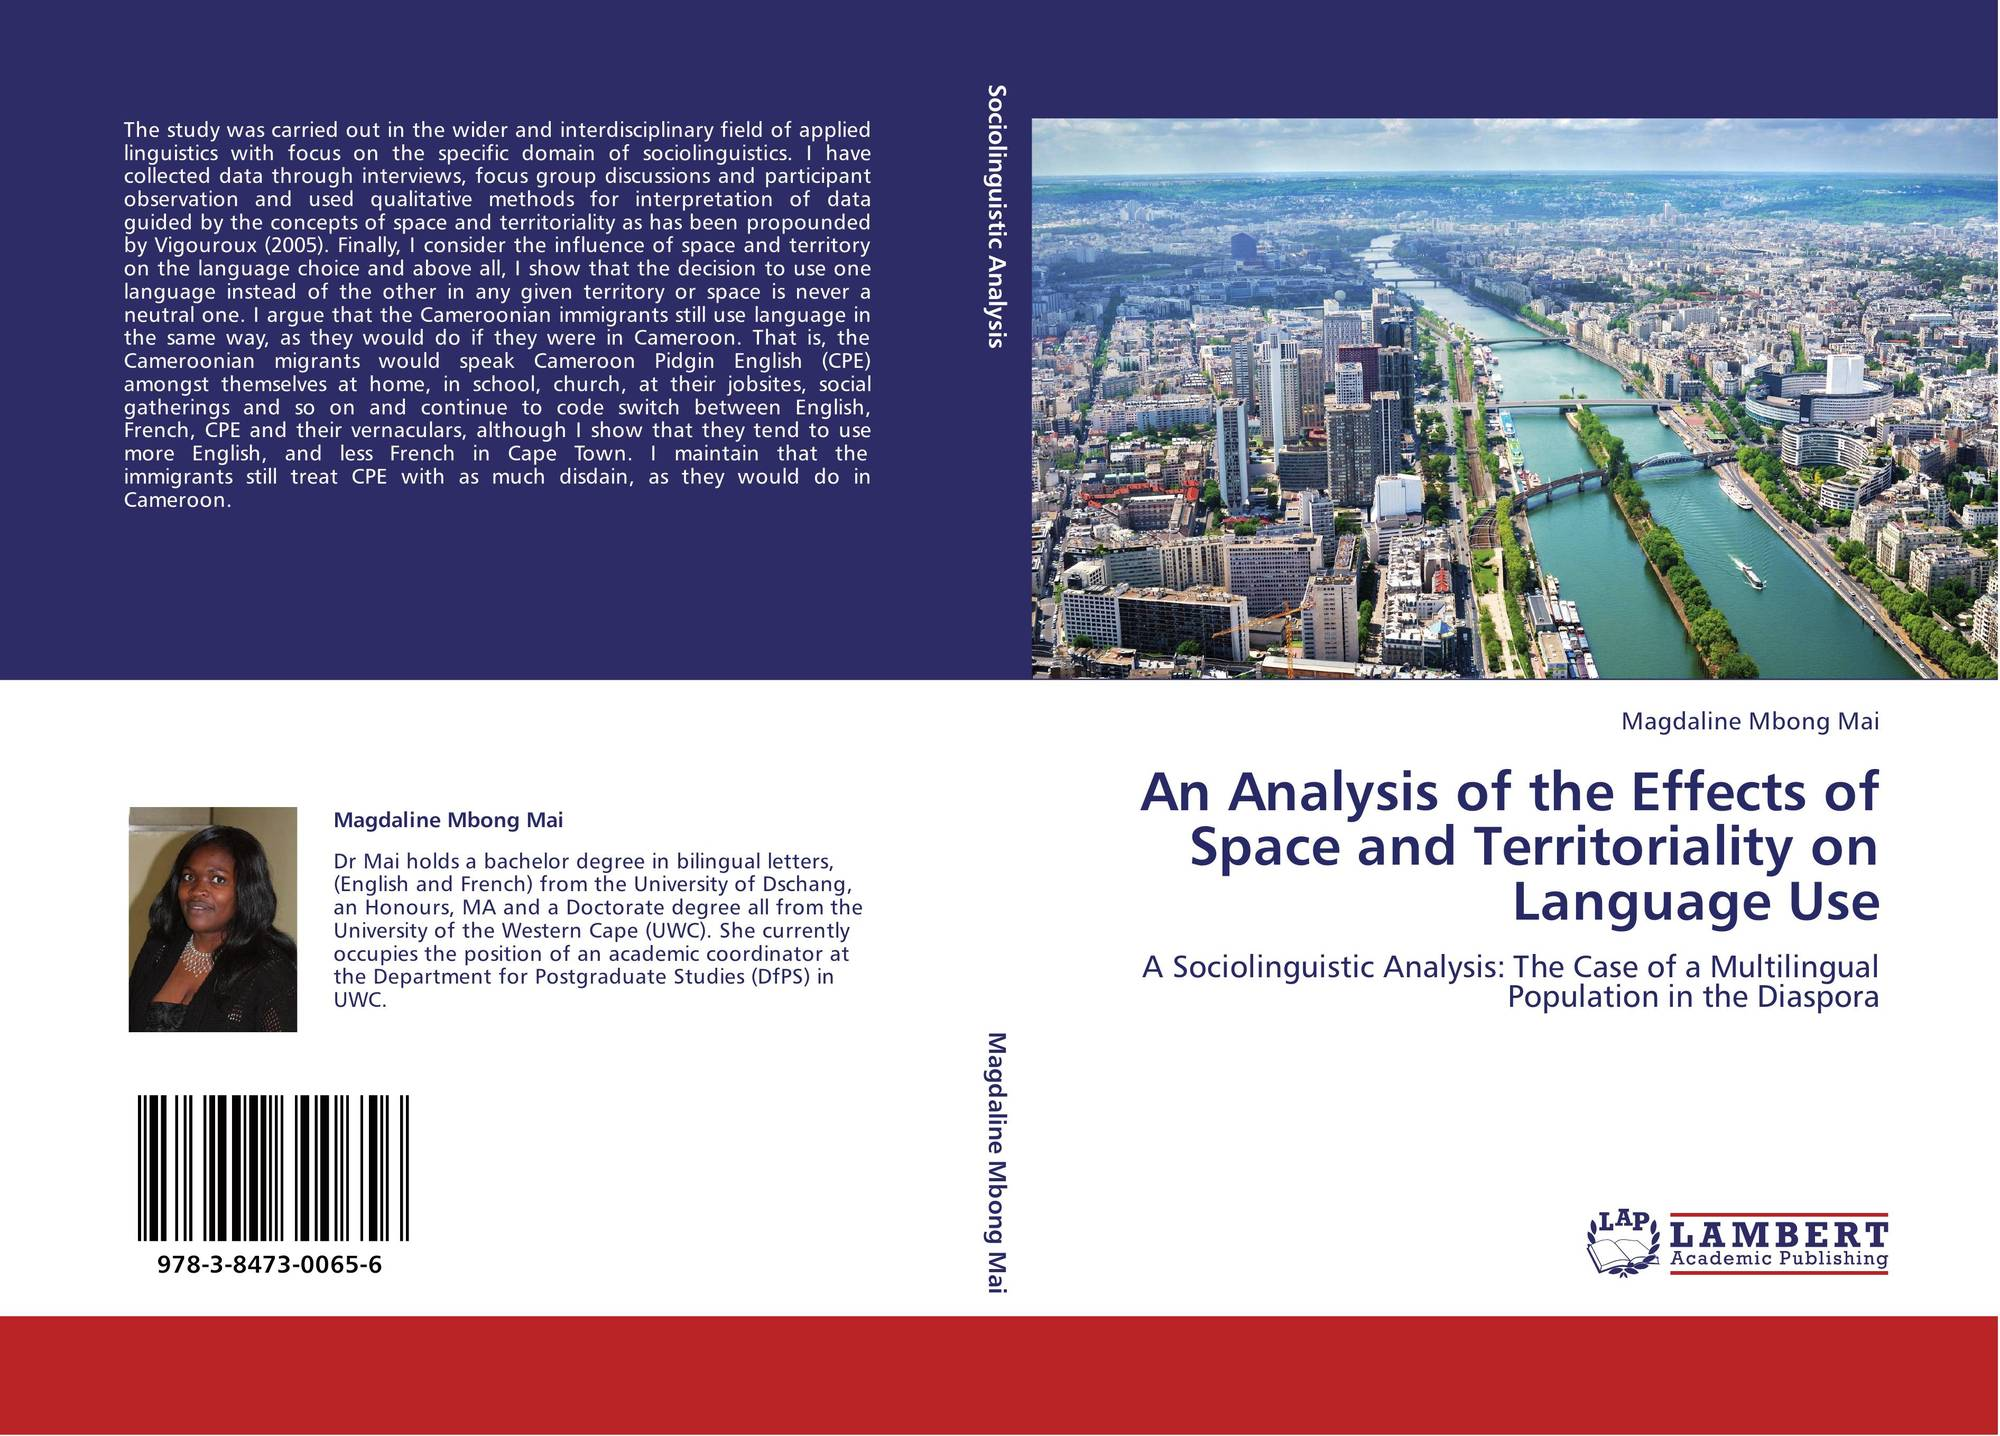 an analysis of the use of language Discourse analysis is the examination of language use by members of a speech community it involves looking at both language form and language functions thus discourse analysis takes different theoretical perspectives and analytic approaches such as- speech act theory, interactional.